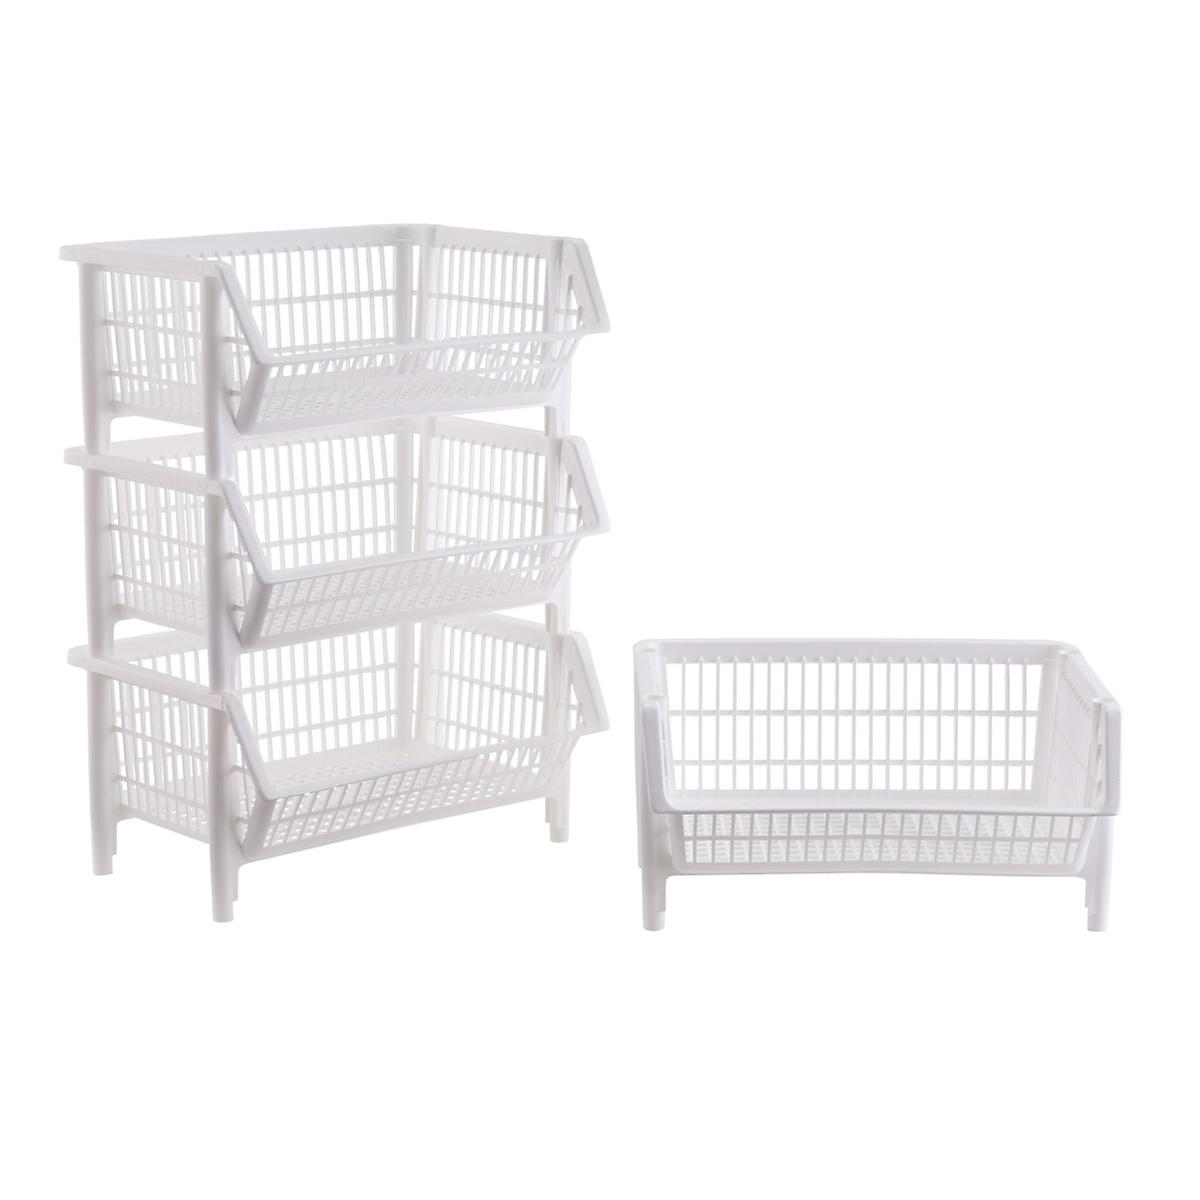 Our White Stackable Baskets Case of 4